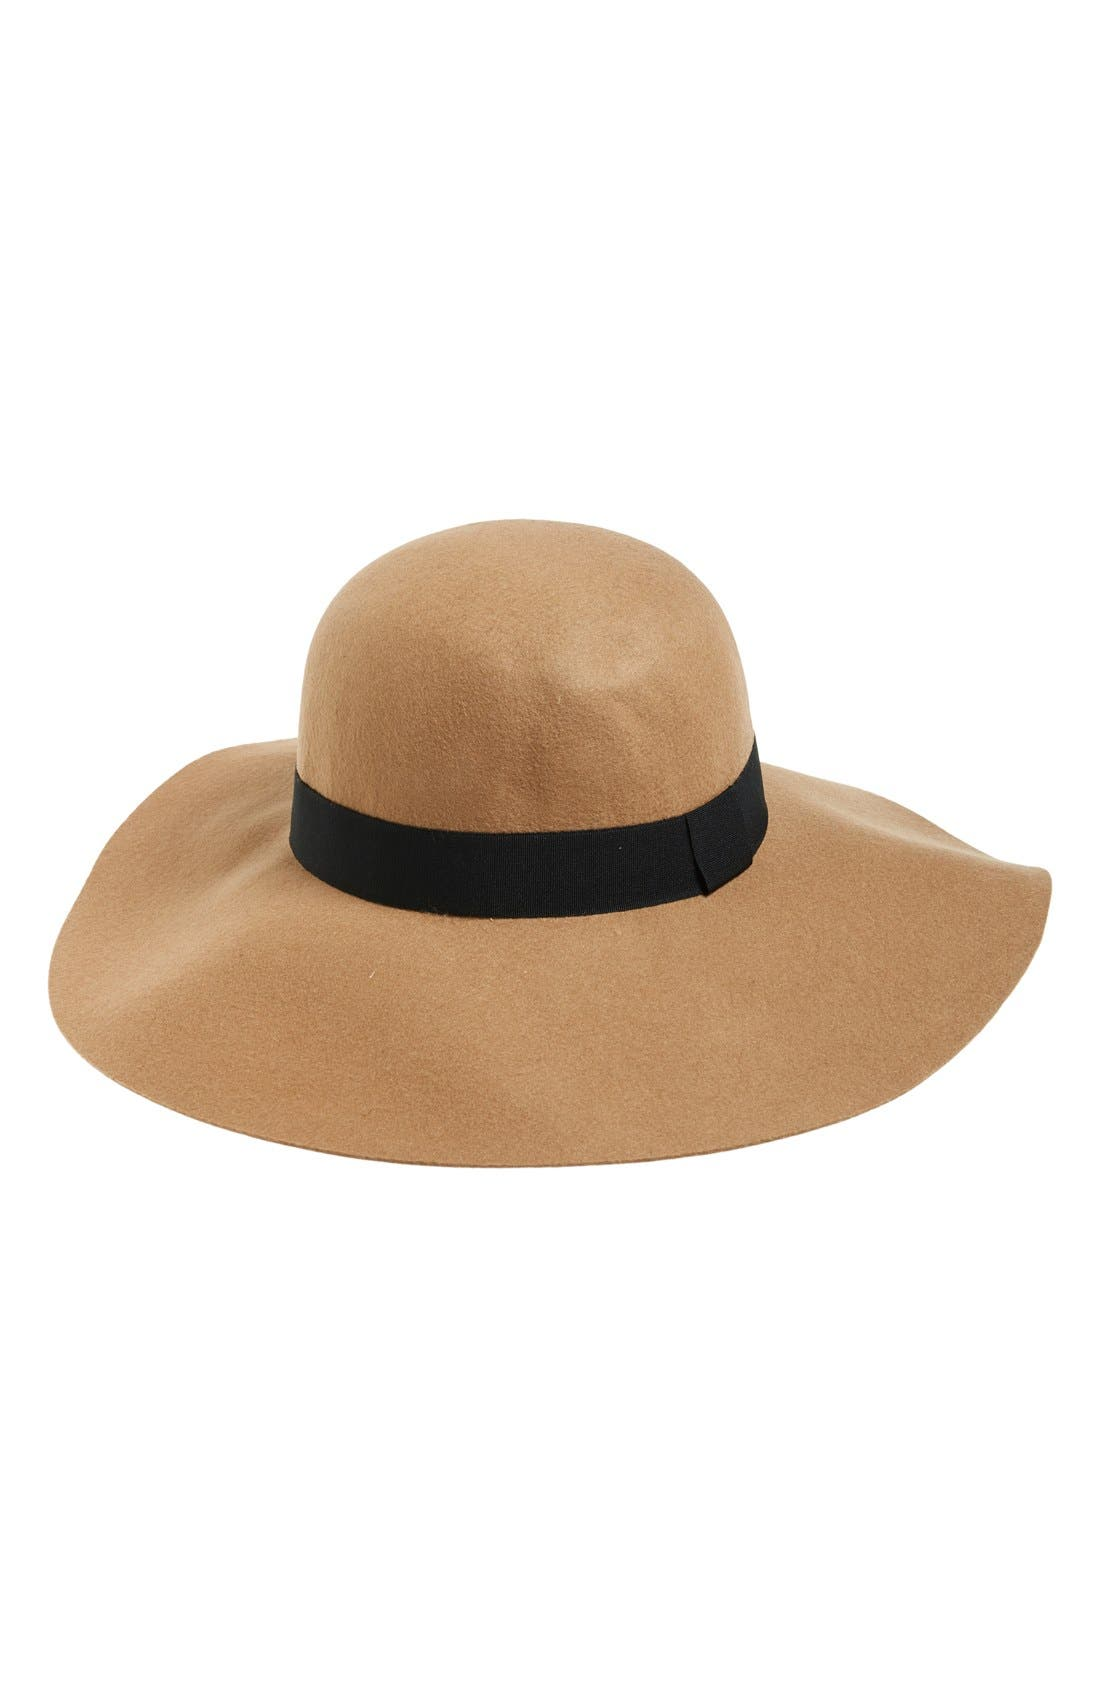 Main Image - David & Young Floppy Felt Hat